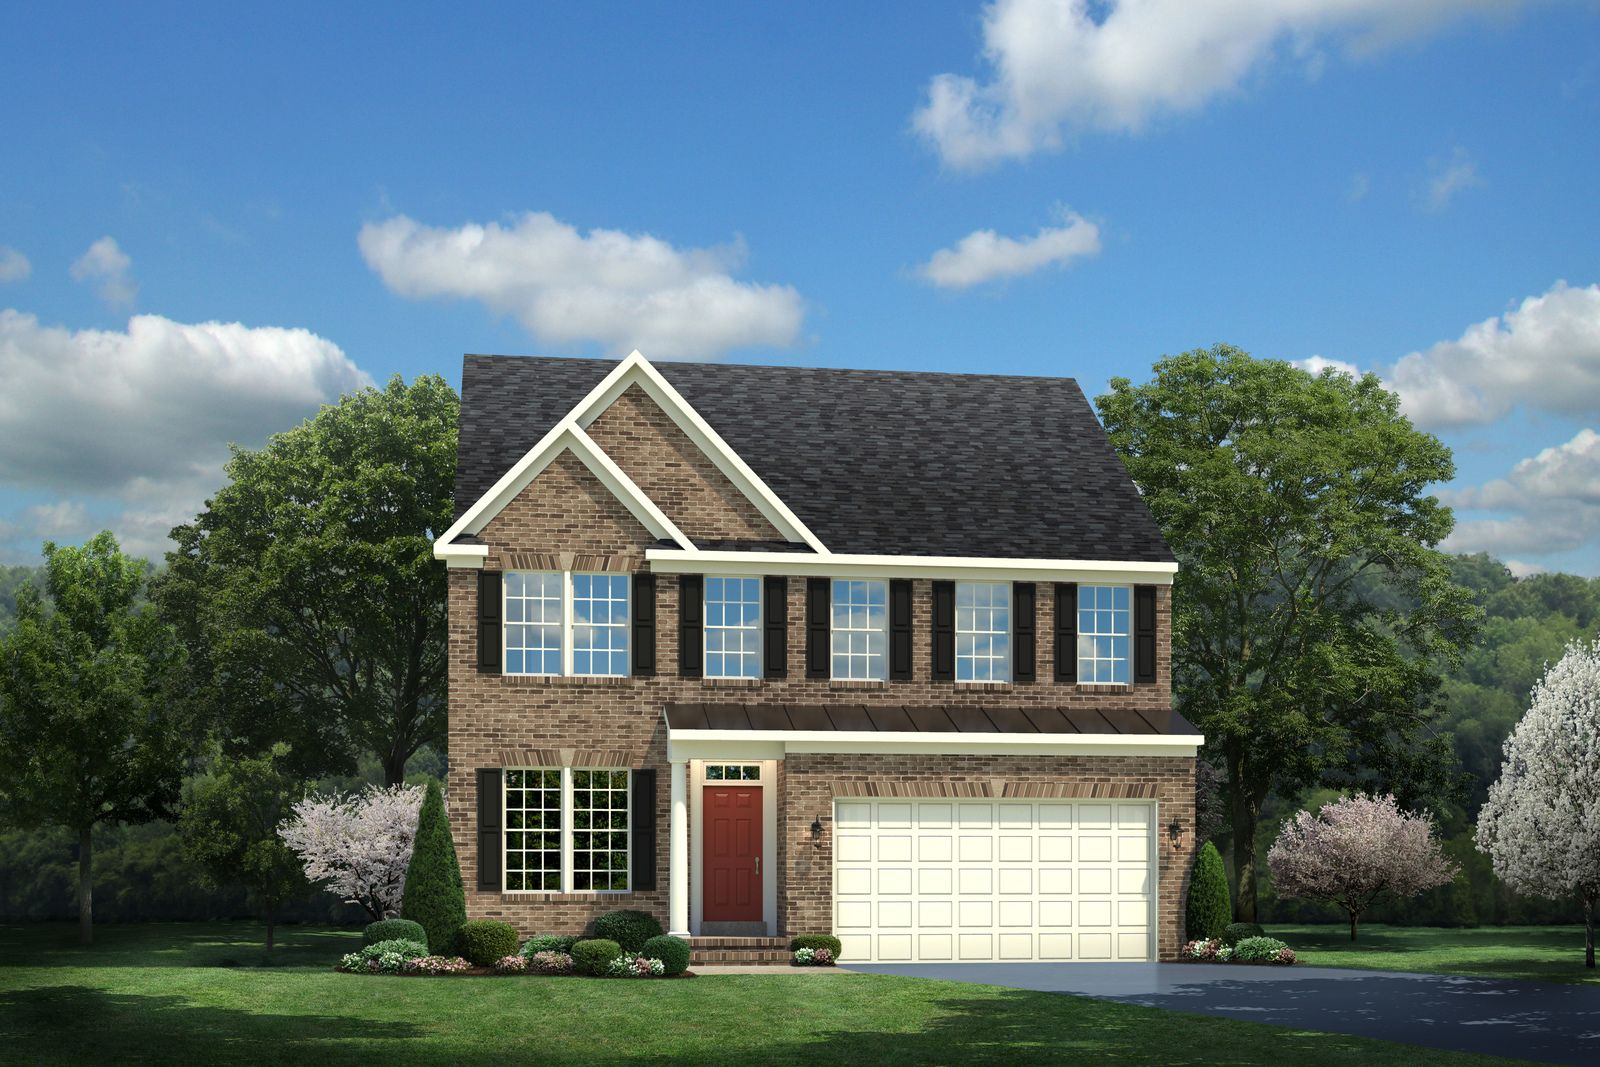 Single Family for Sale at May's Quarter - Gable 12420 May's Quarter Road Lake Ridge, Virginia 22192 United States